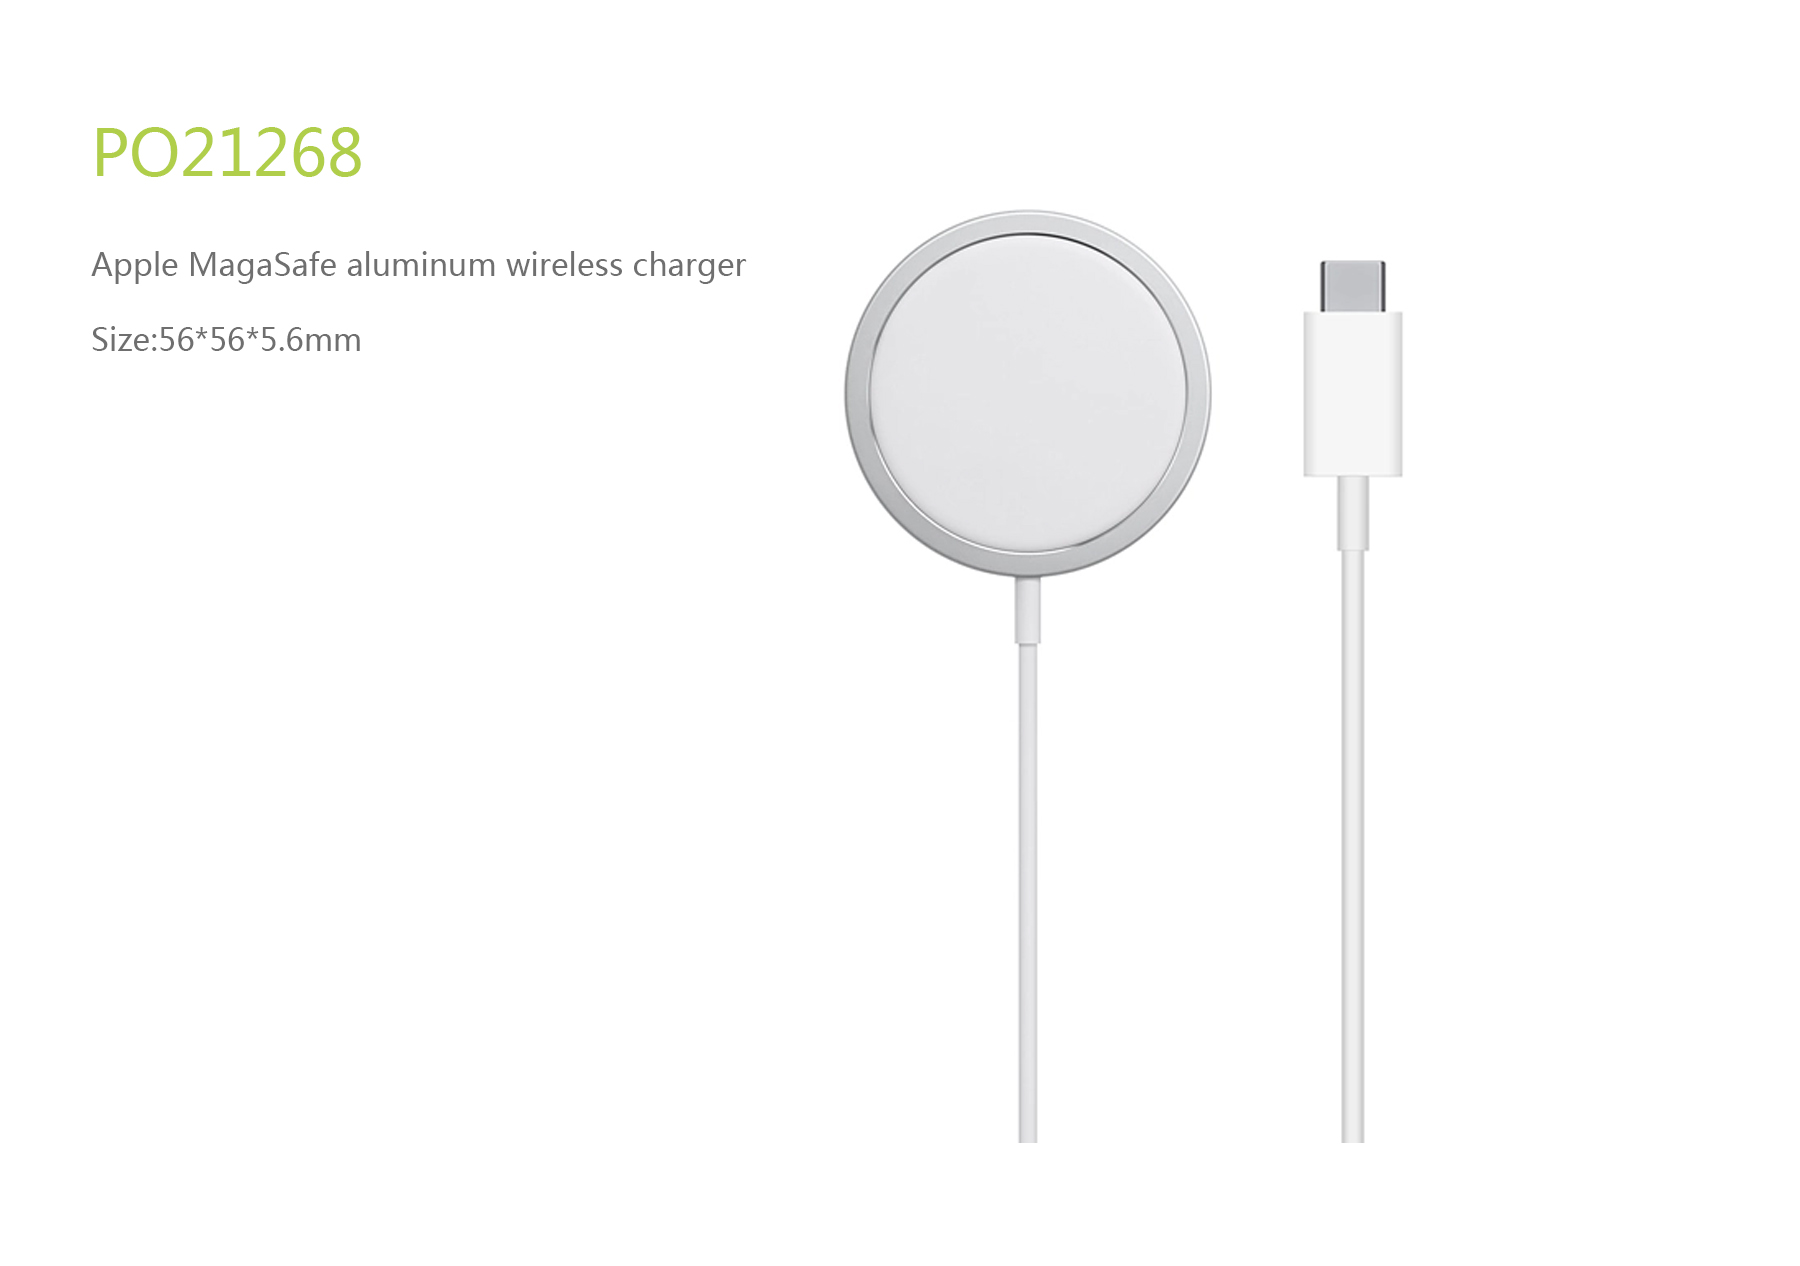 Apple Magsafe aluminum wireless charger